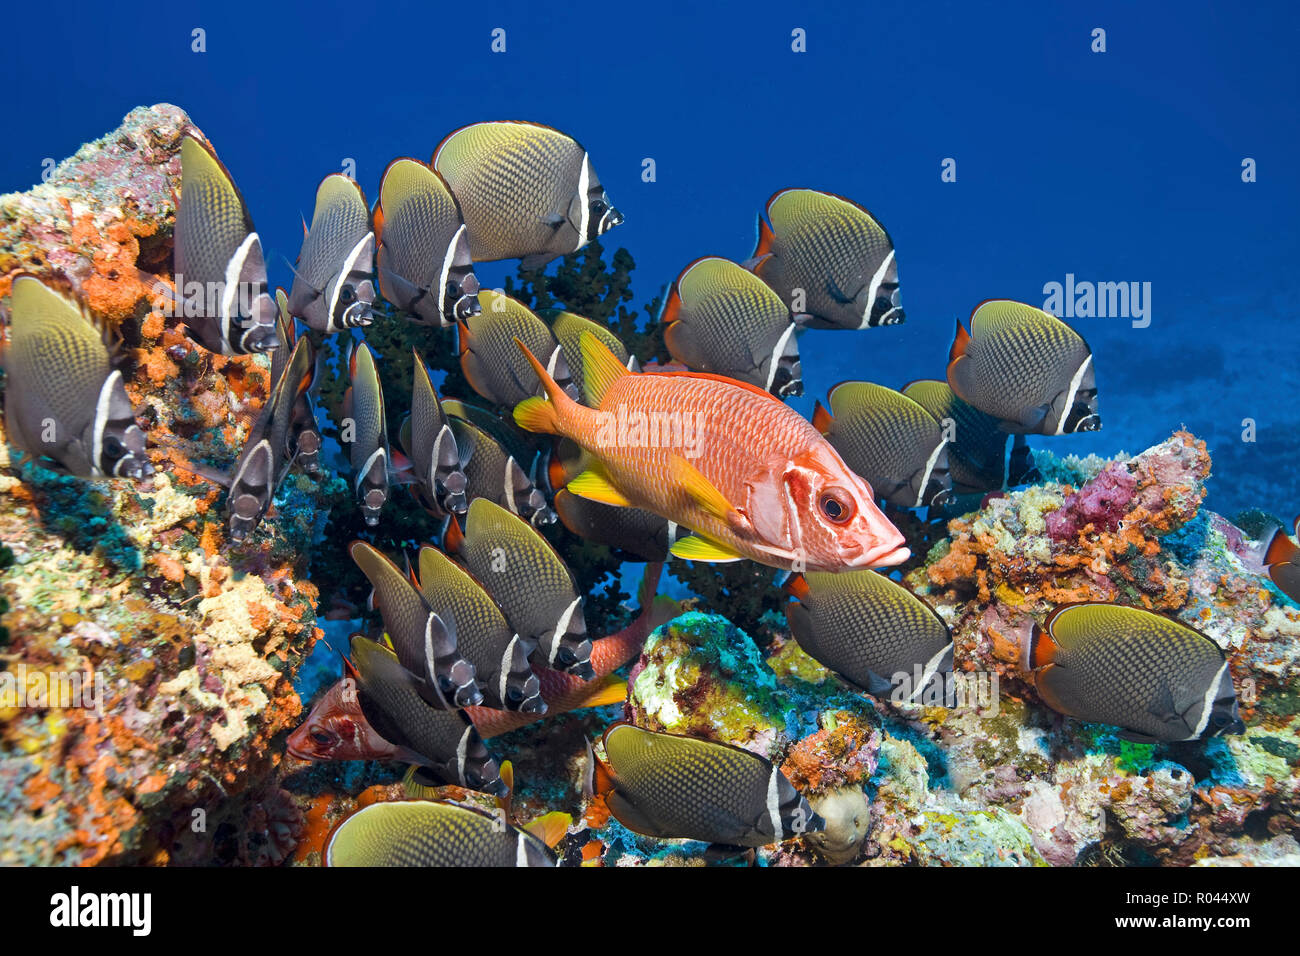 A Squirrelfish (Sargocentron spiniferum) between a group Collared butterflyfish (Chaetodon collare), Ari Atoll, Maldive islands - Stock Image